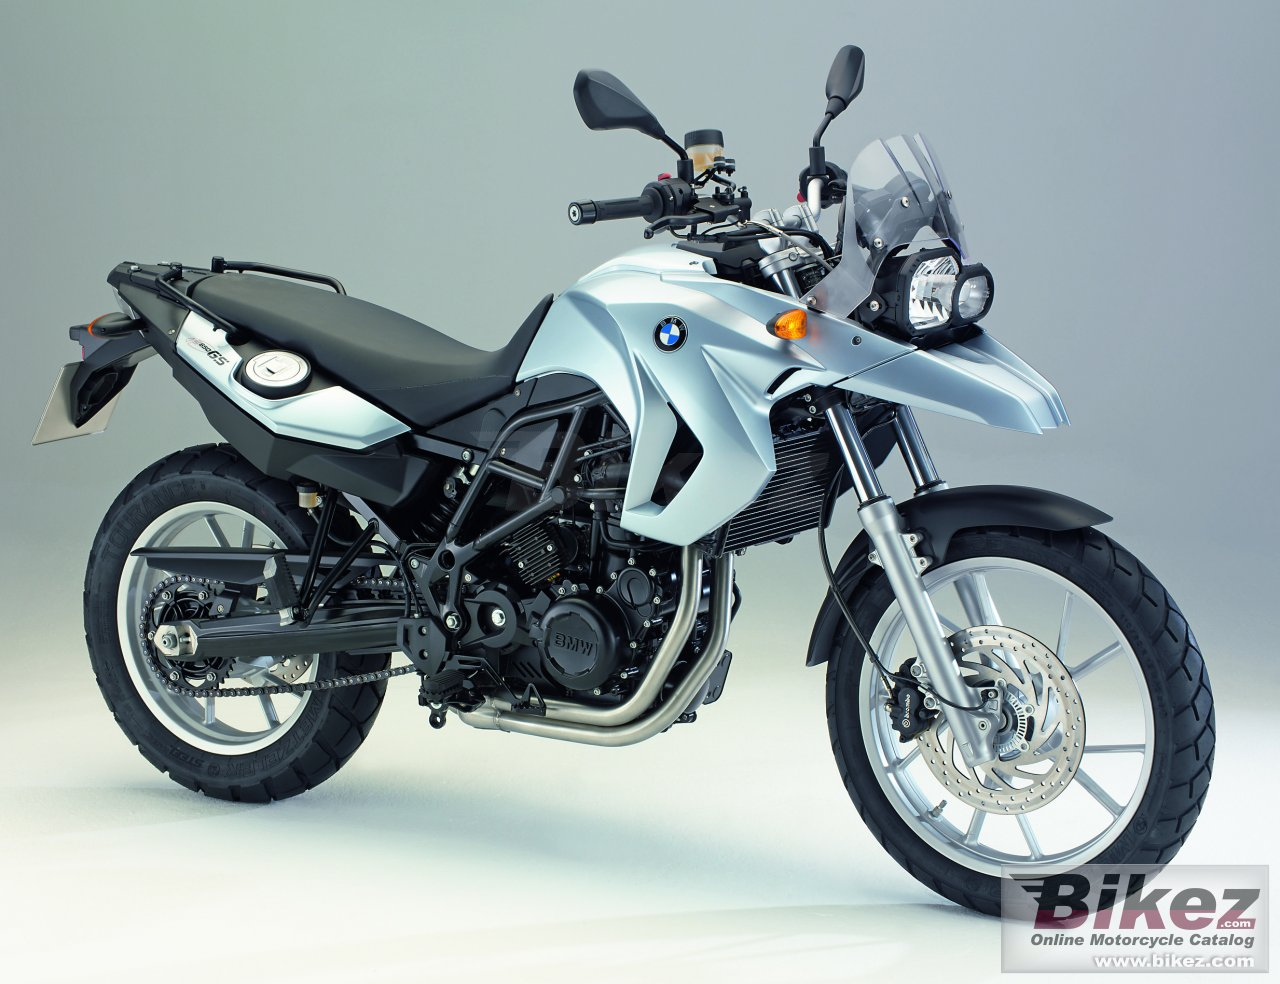 Big BMW f 650 gs picture and wallpaper from Bikez.com